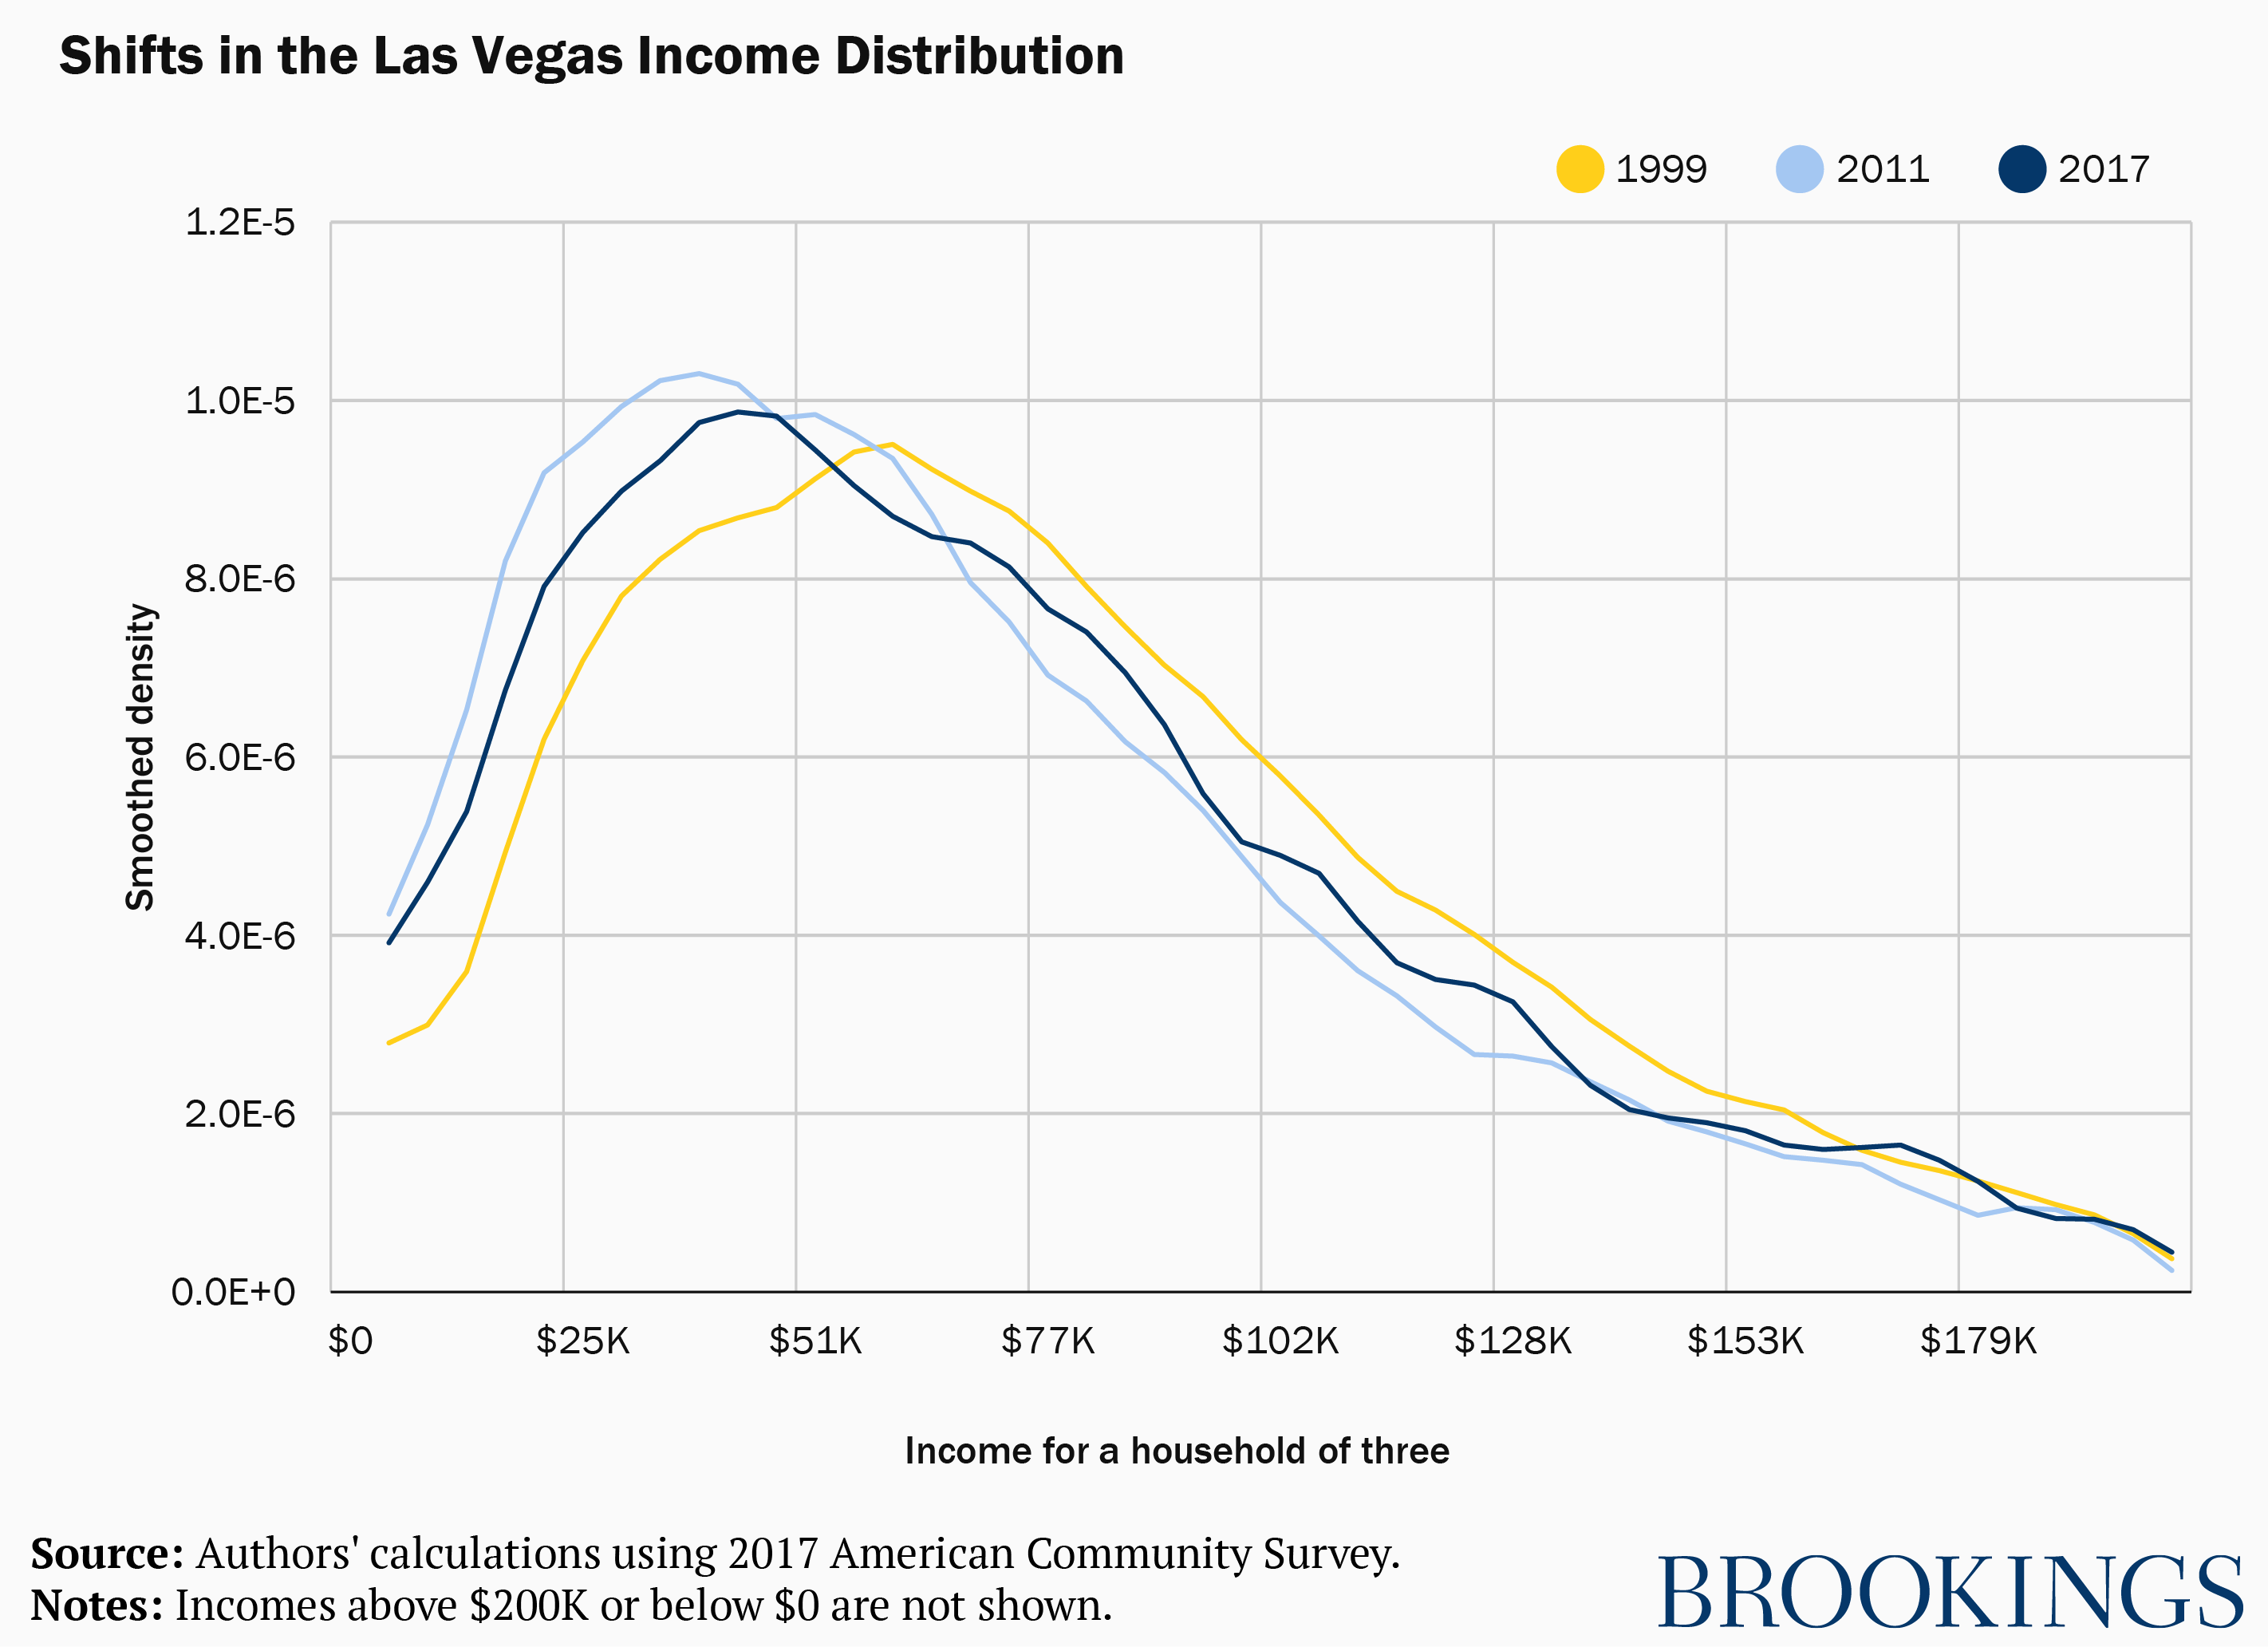 Shifts in Las Vegas income distribution, 1999 to present